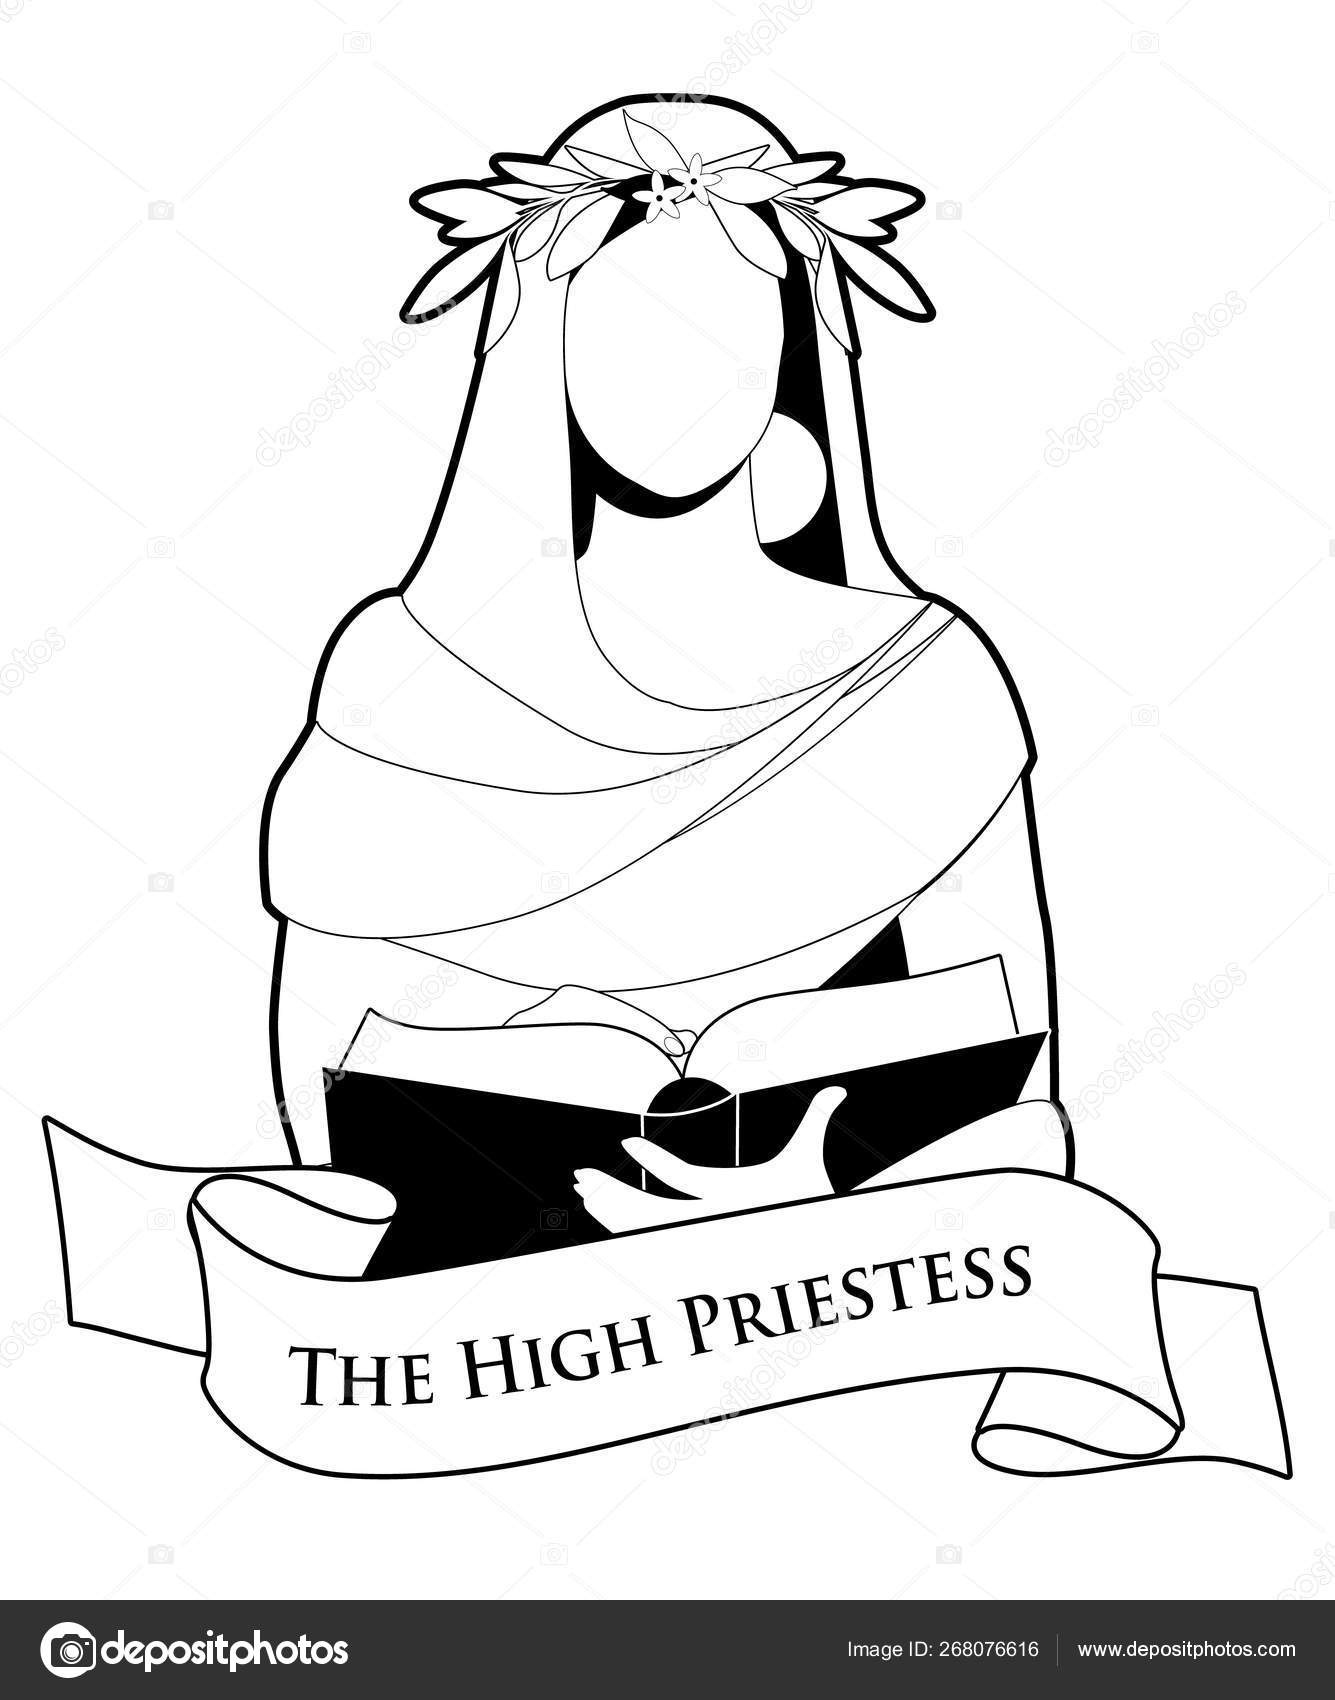 Tarot Card Concept  The High Priestess with a laurel wreath